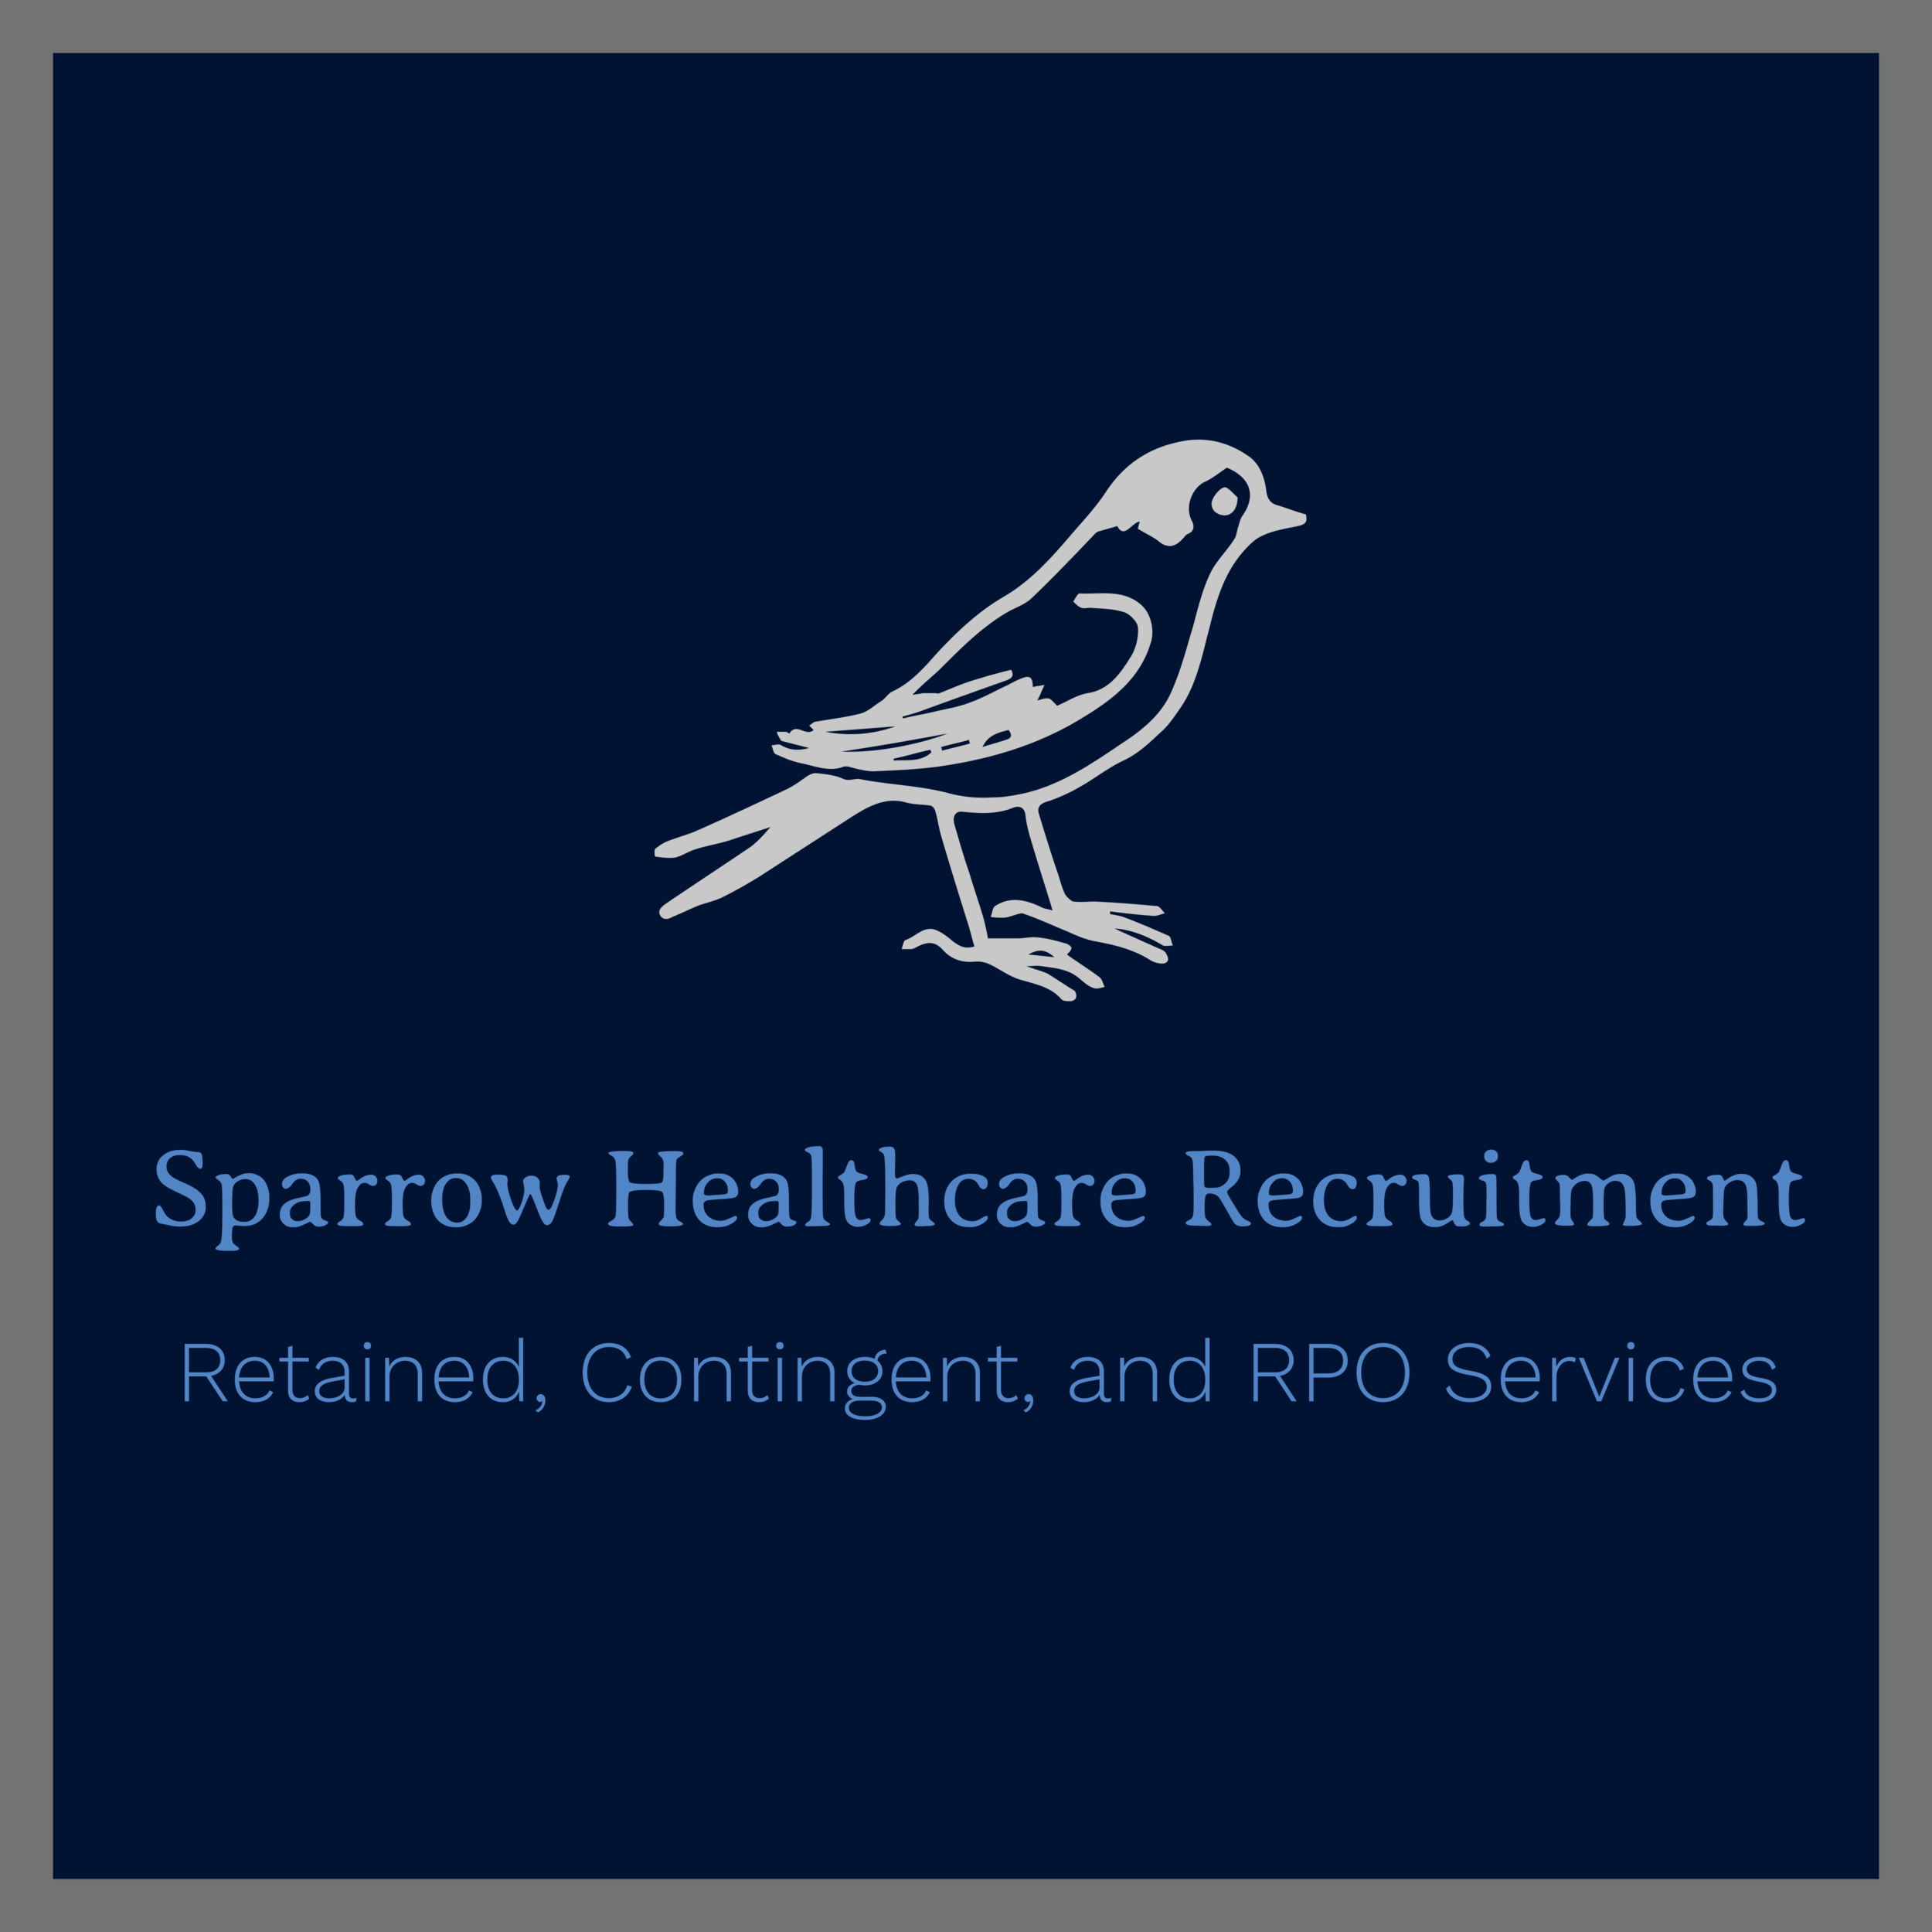 Sparrow Healthcare Recruitment - Sparrow Healthcare Recruitment™ provides retained, contingent, and RPO talent acquisition services for a wide range of healthcare organizations including non-profit and private practice.